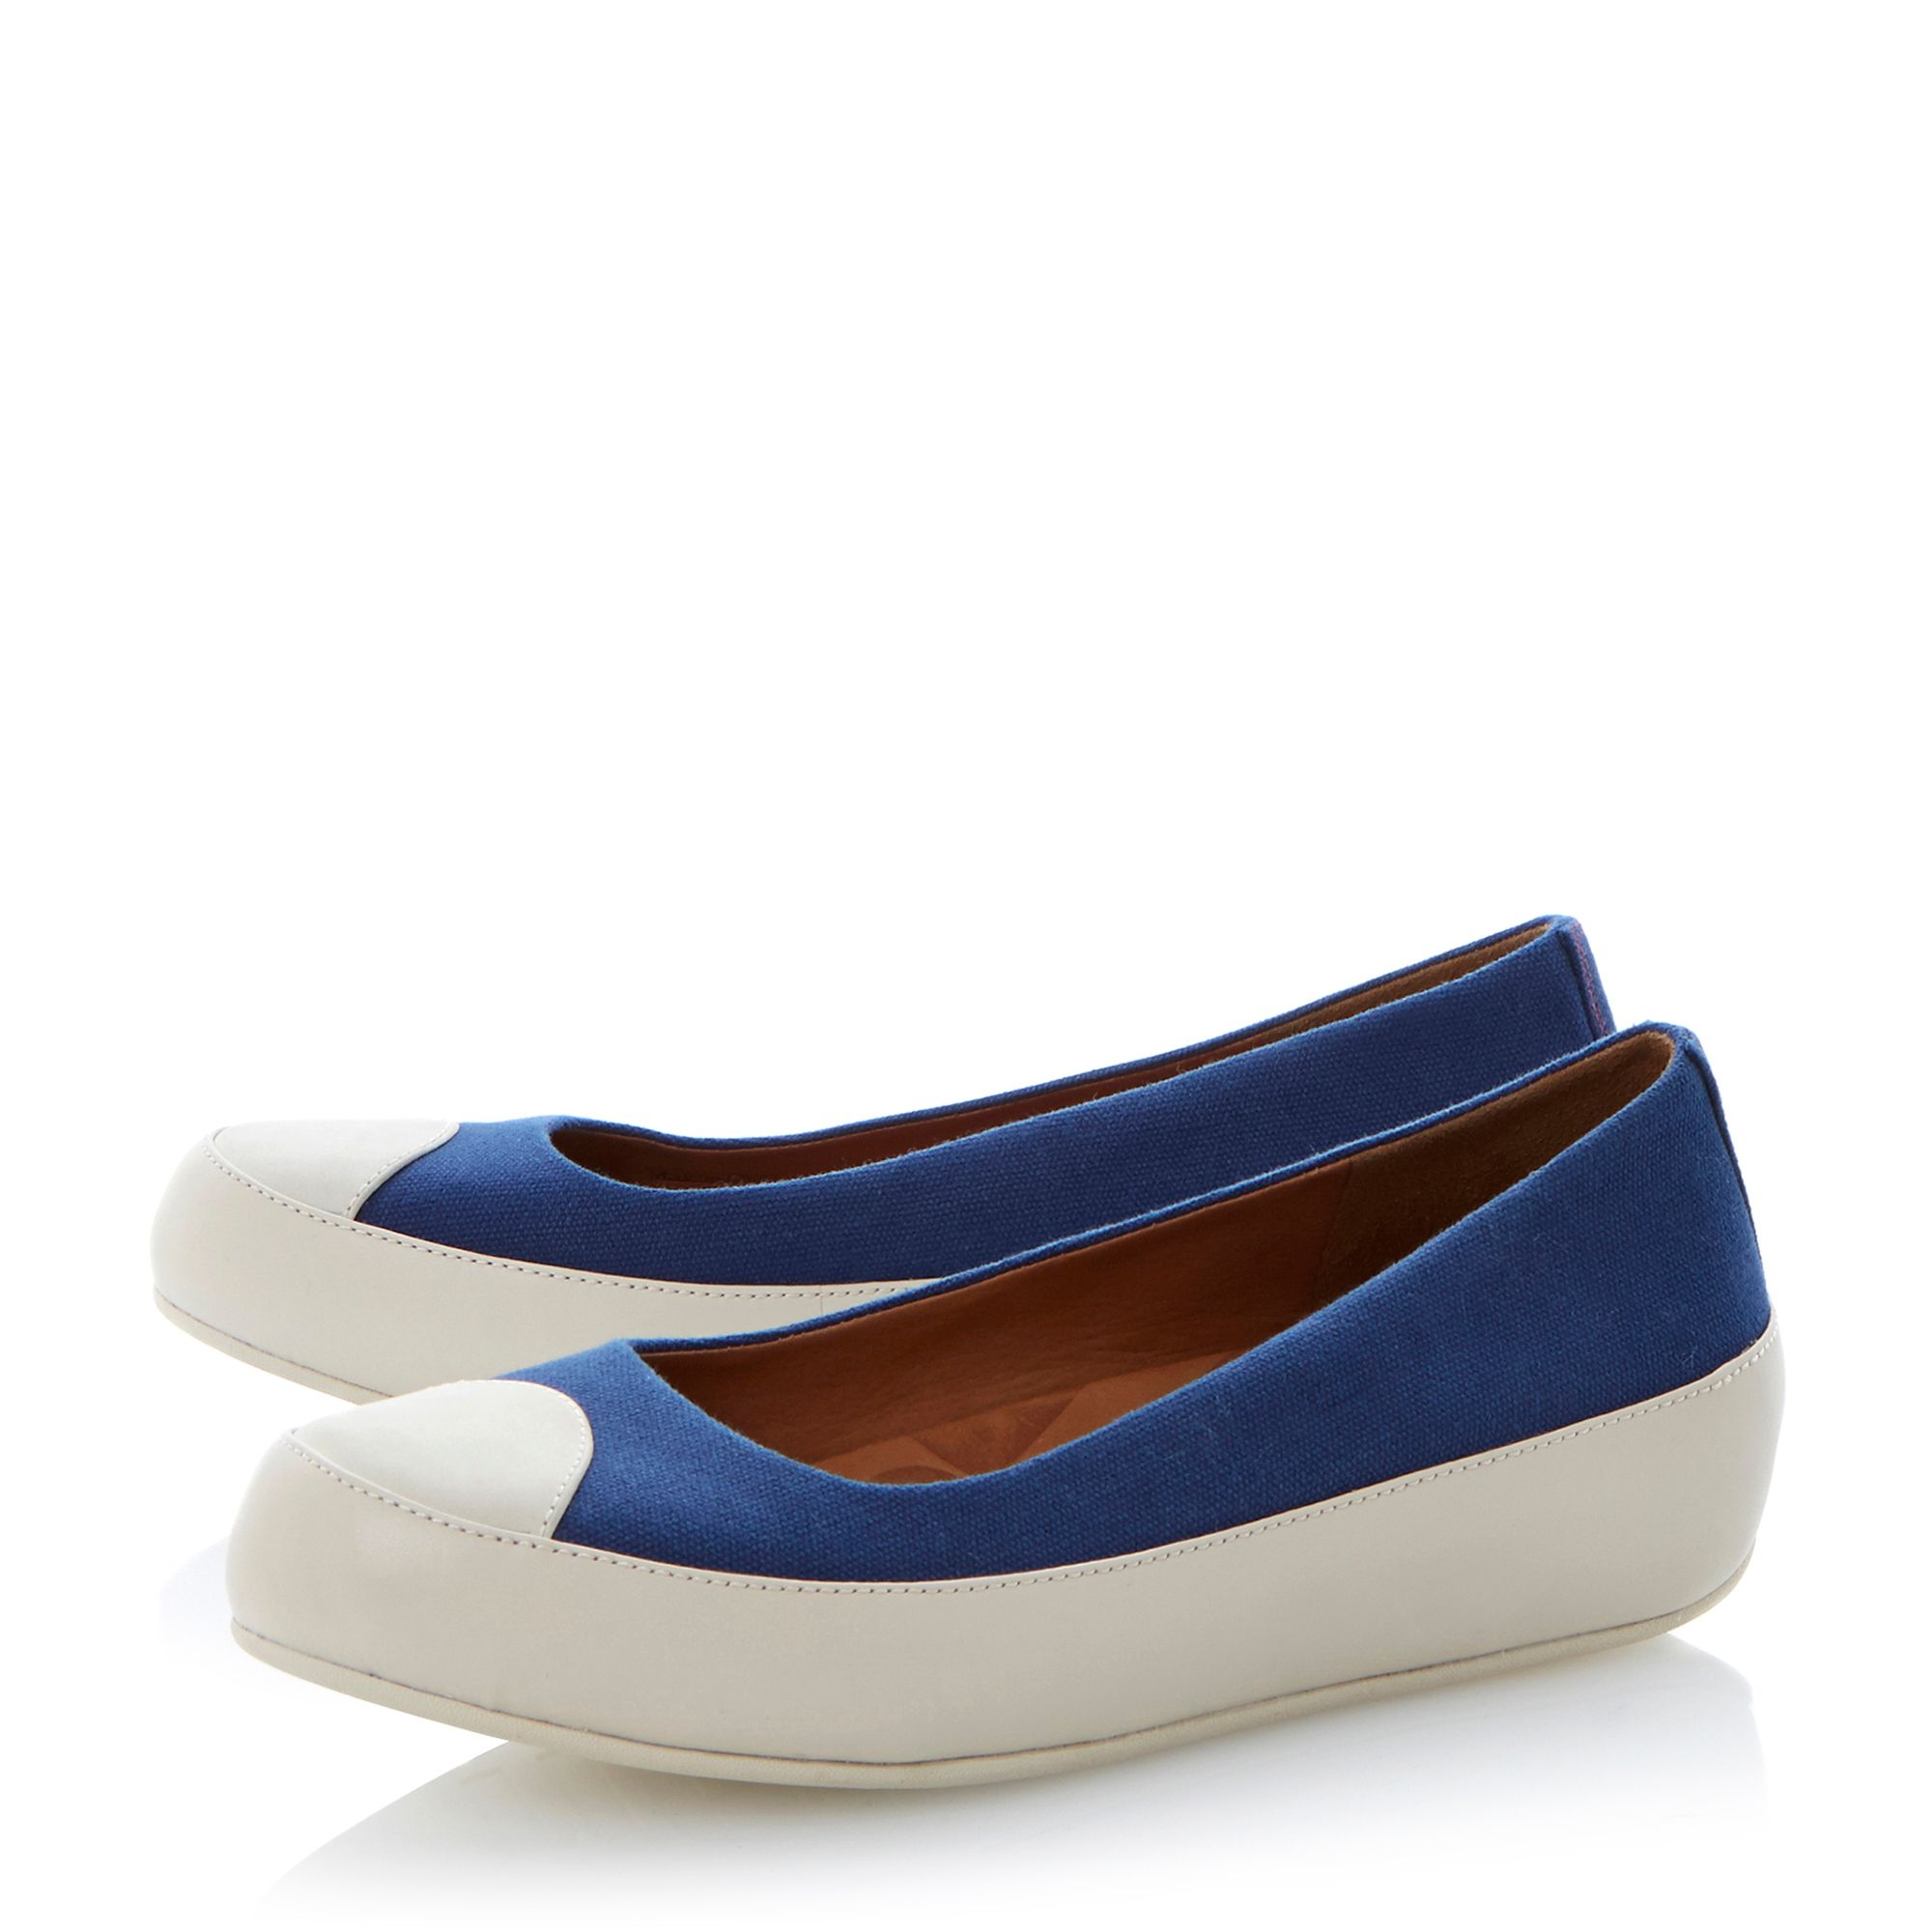 fitflop due canvas toe platform ballerina shoes in